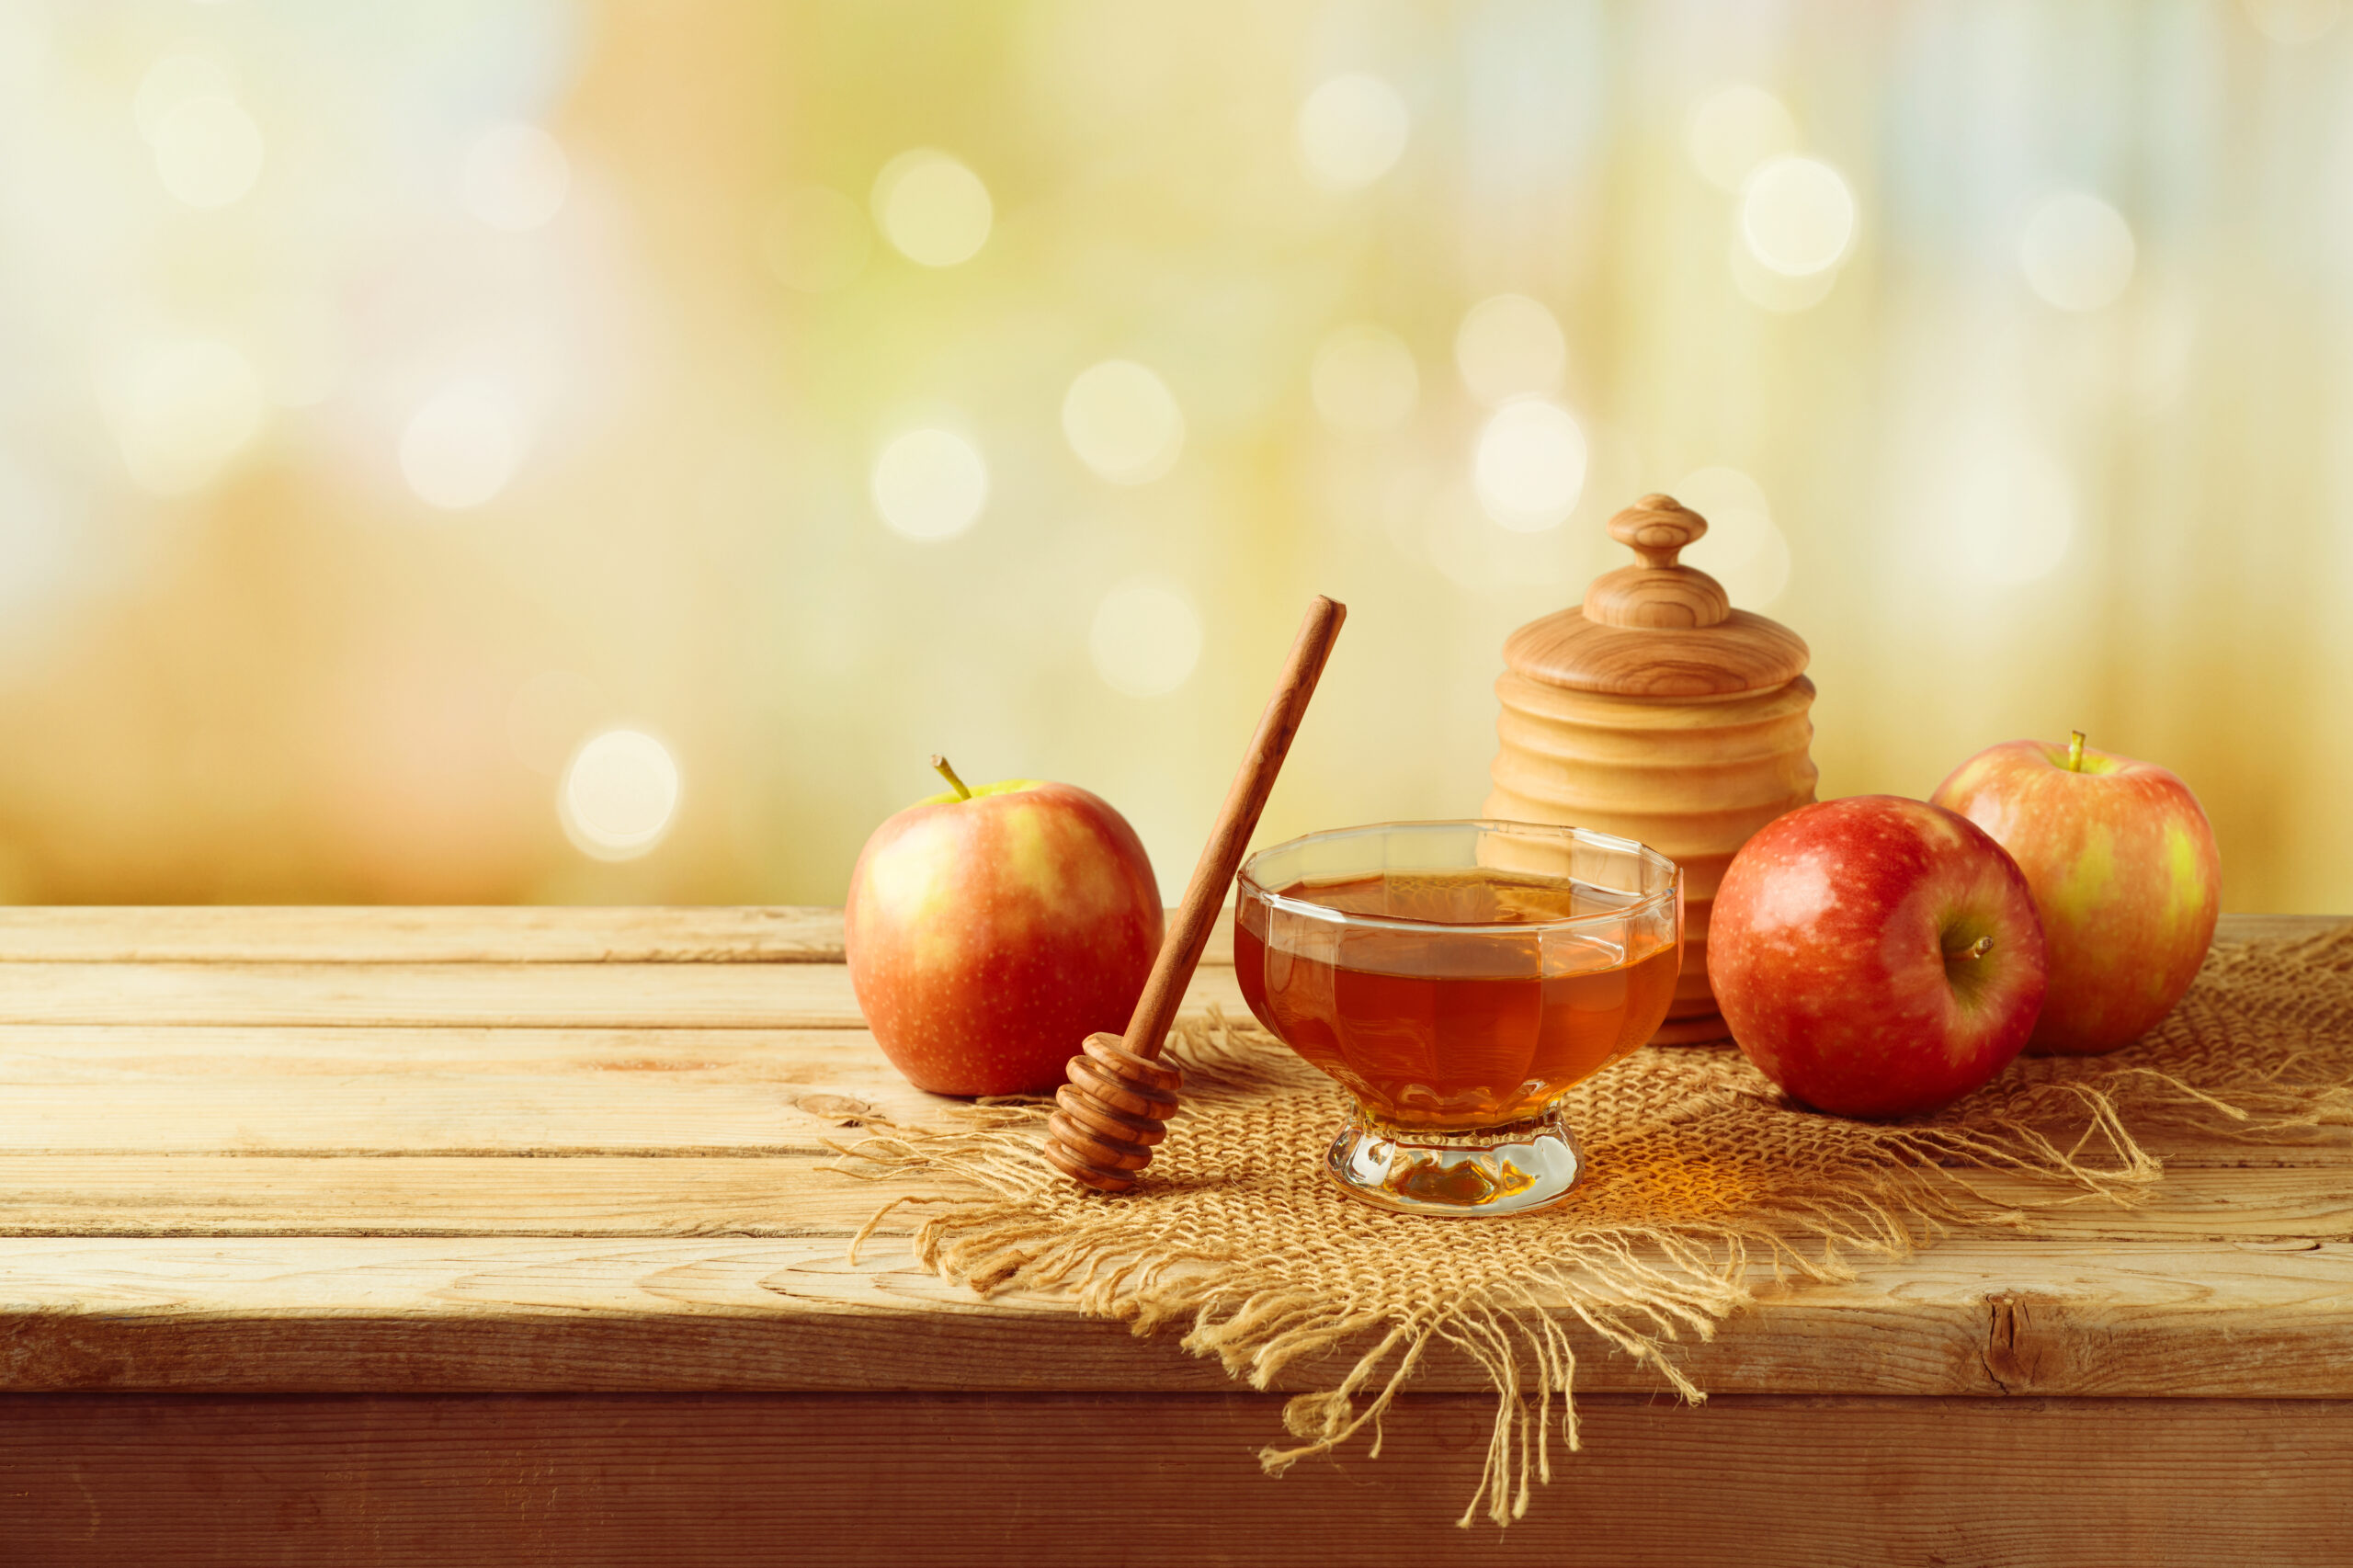 Honey,And,Apples,On,Wooden,Table.,Jewish,Holiday,Rosh,Hashanah